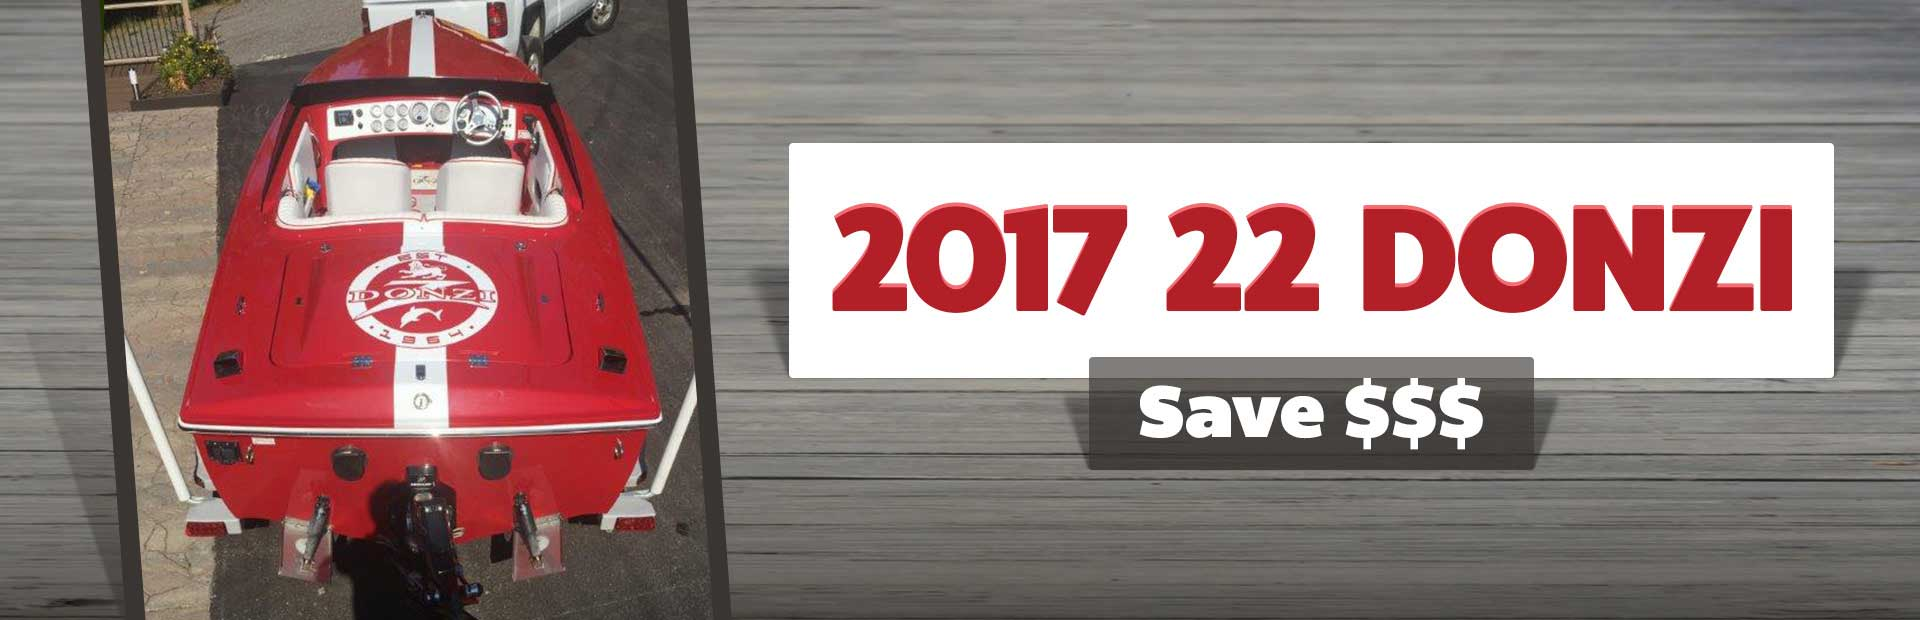 Save $$$ on the 2017 22 Donzi!